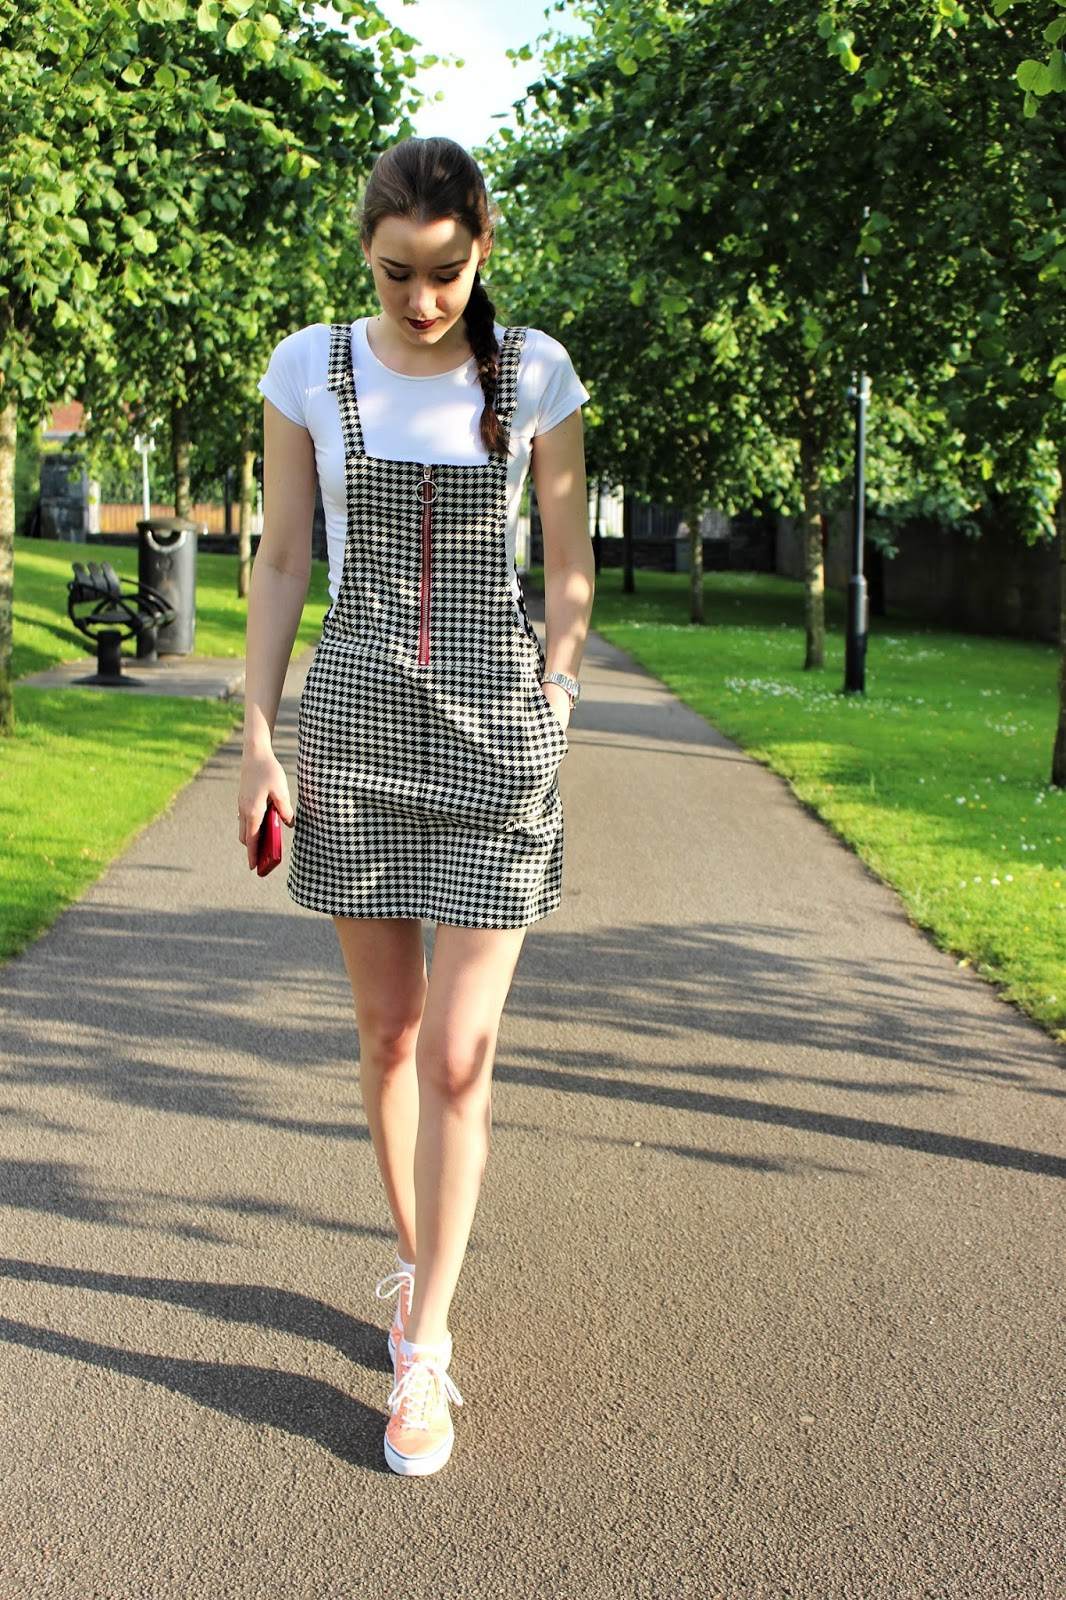 OOTD 49 :: Sporty Summer Look : Pinafore Dress